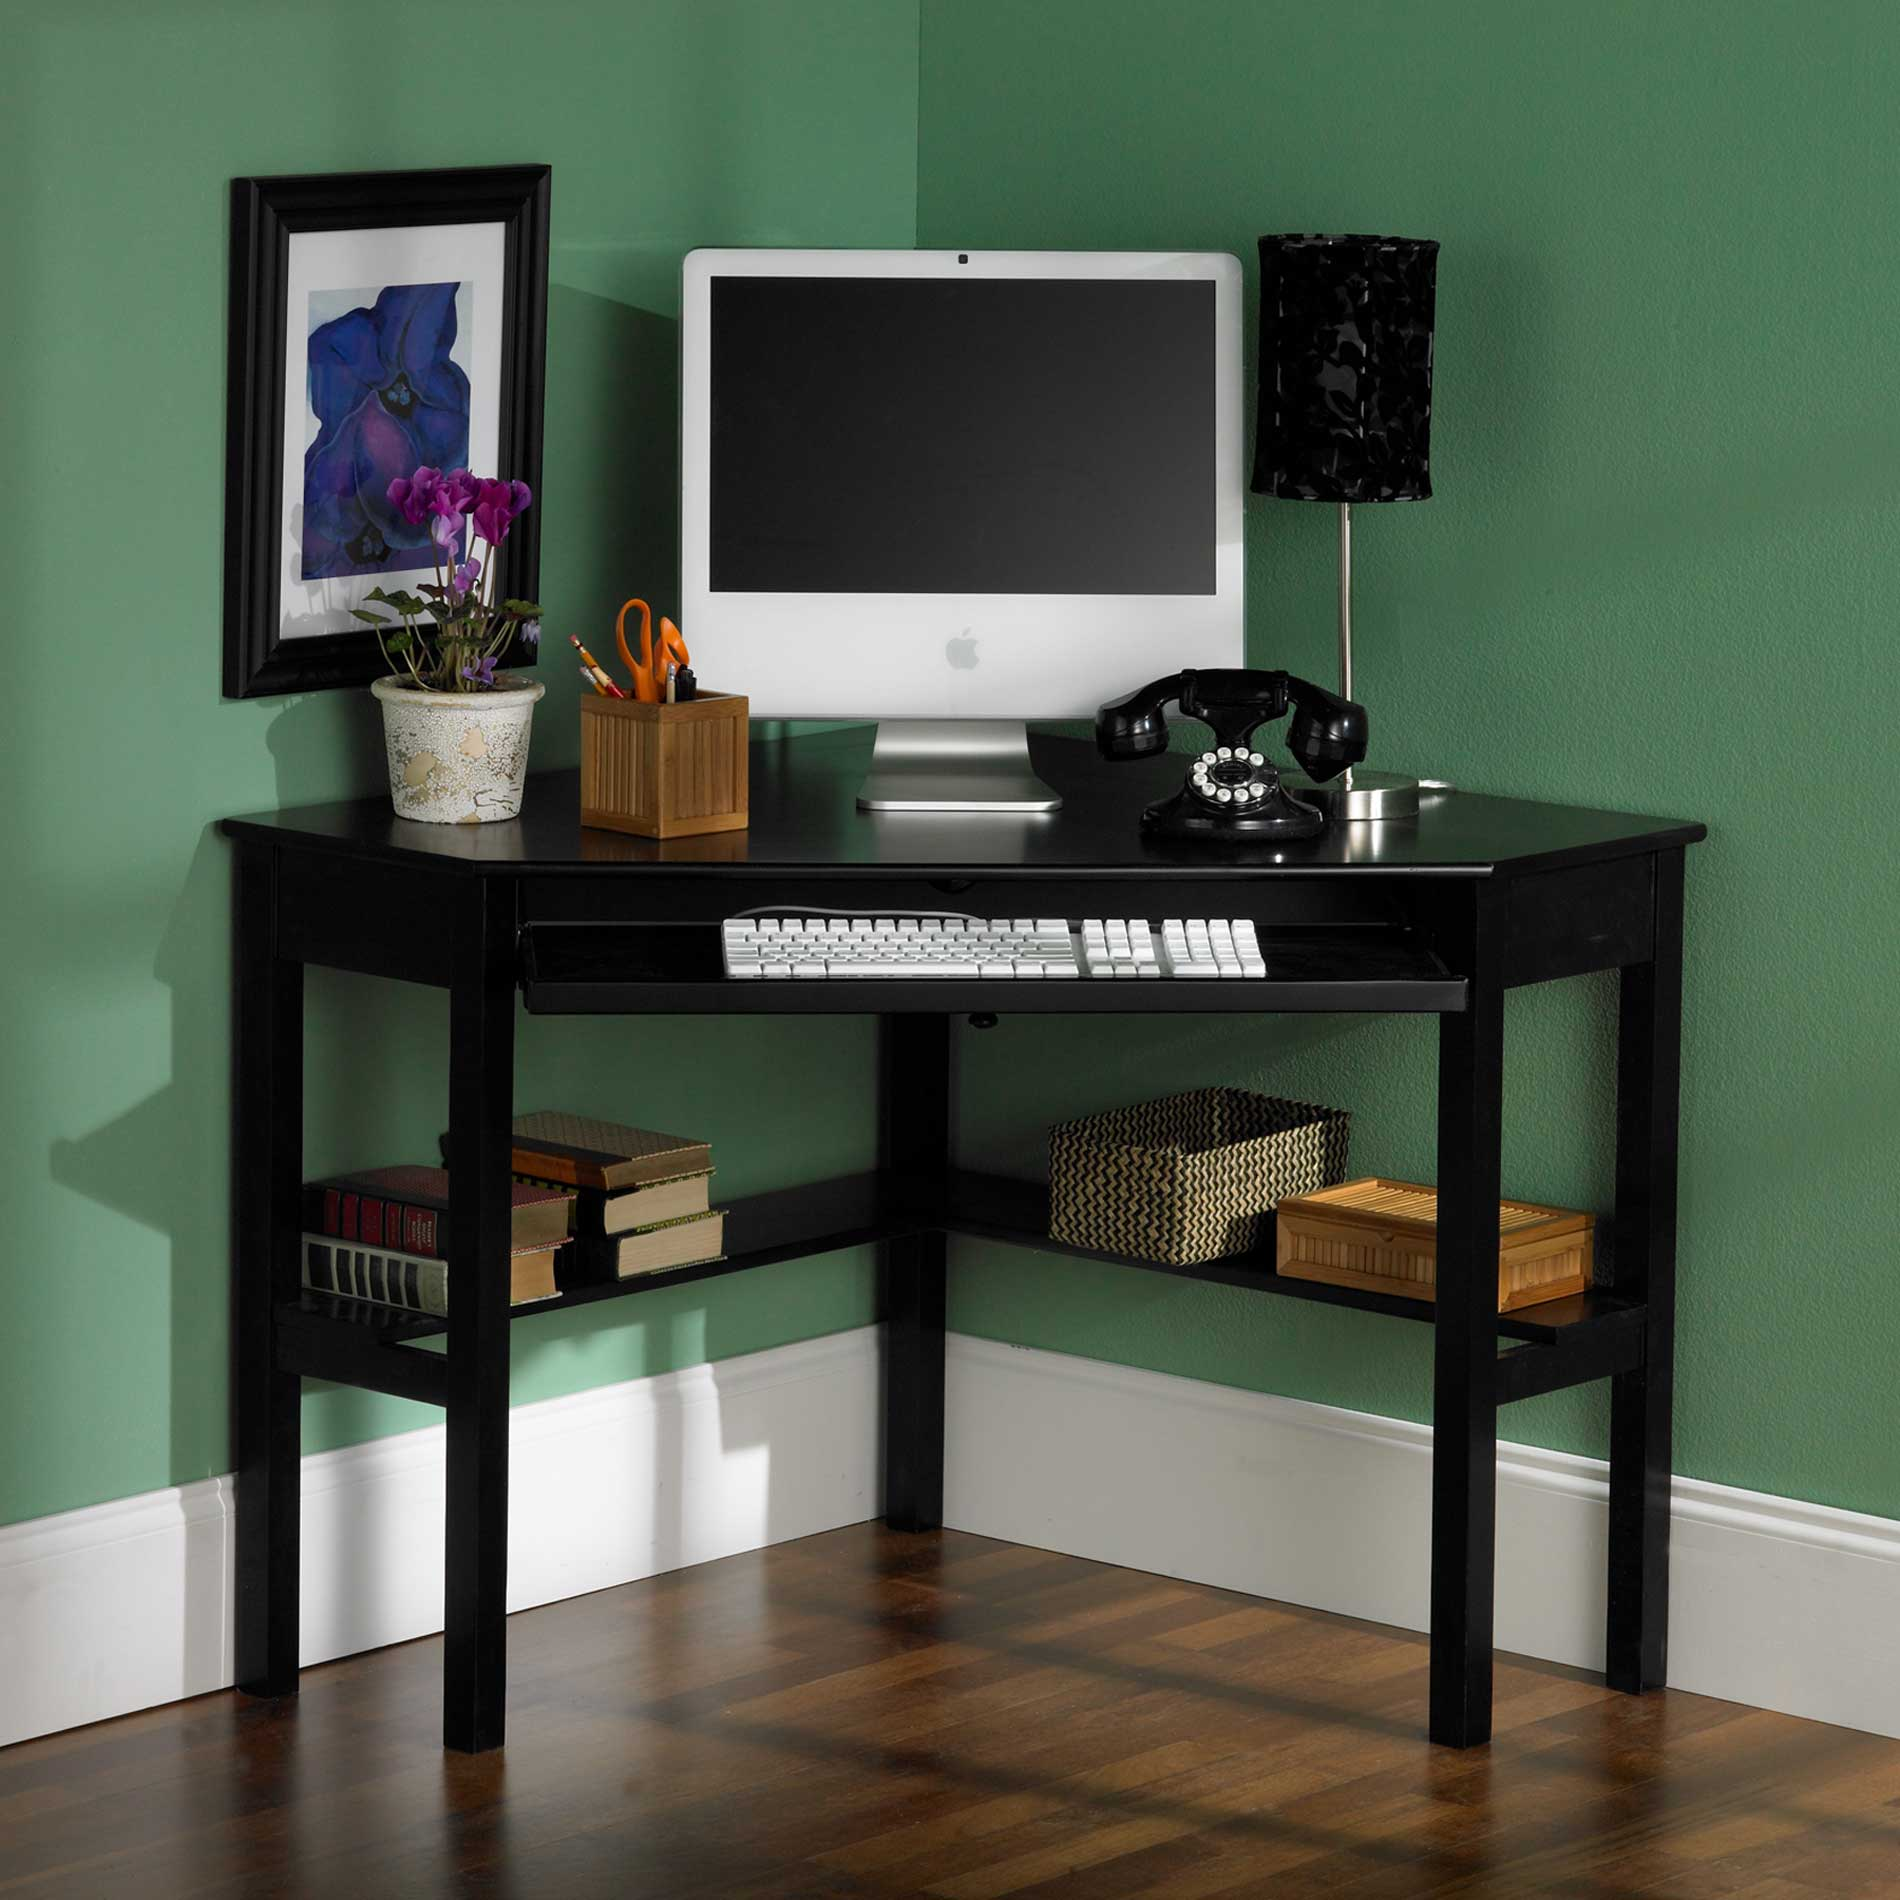 Corner puter Desks for Home fice